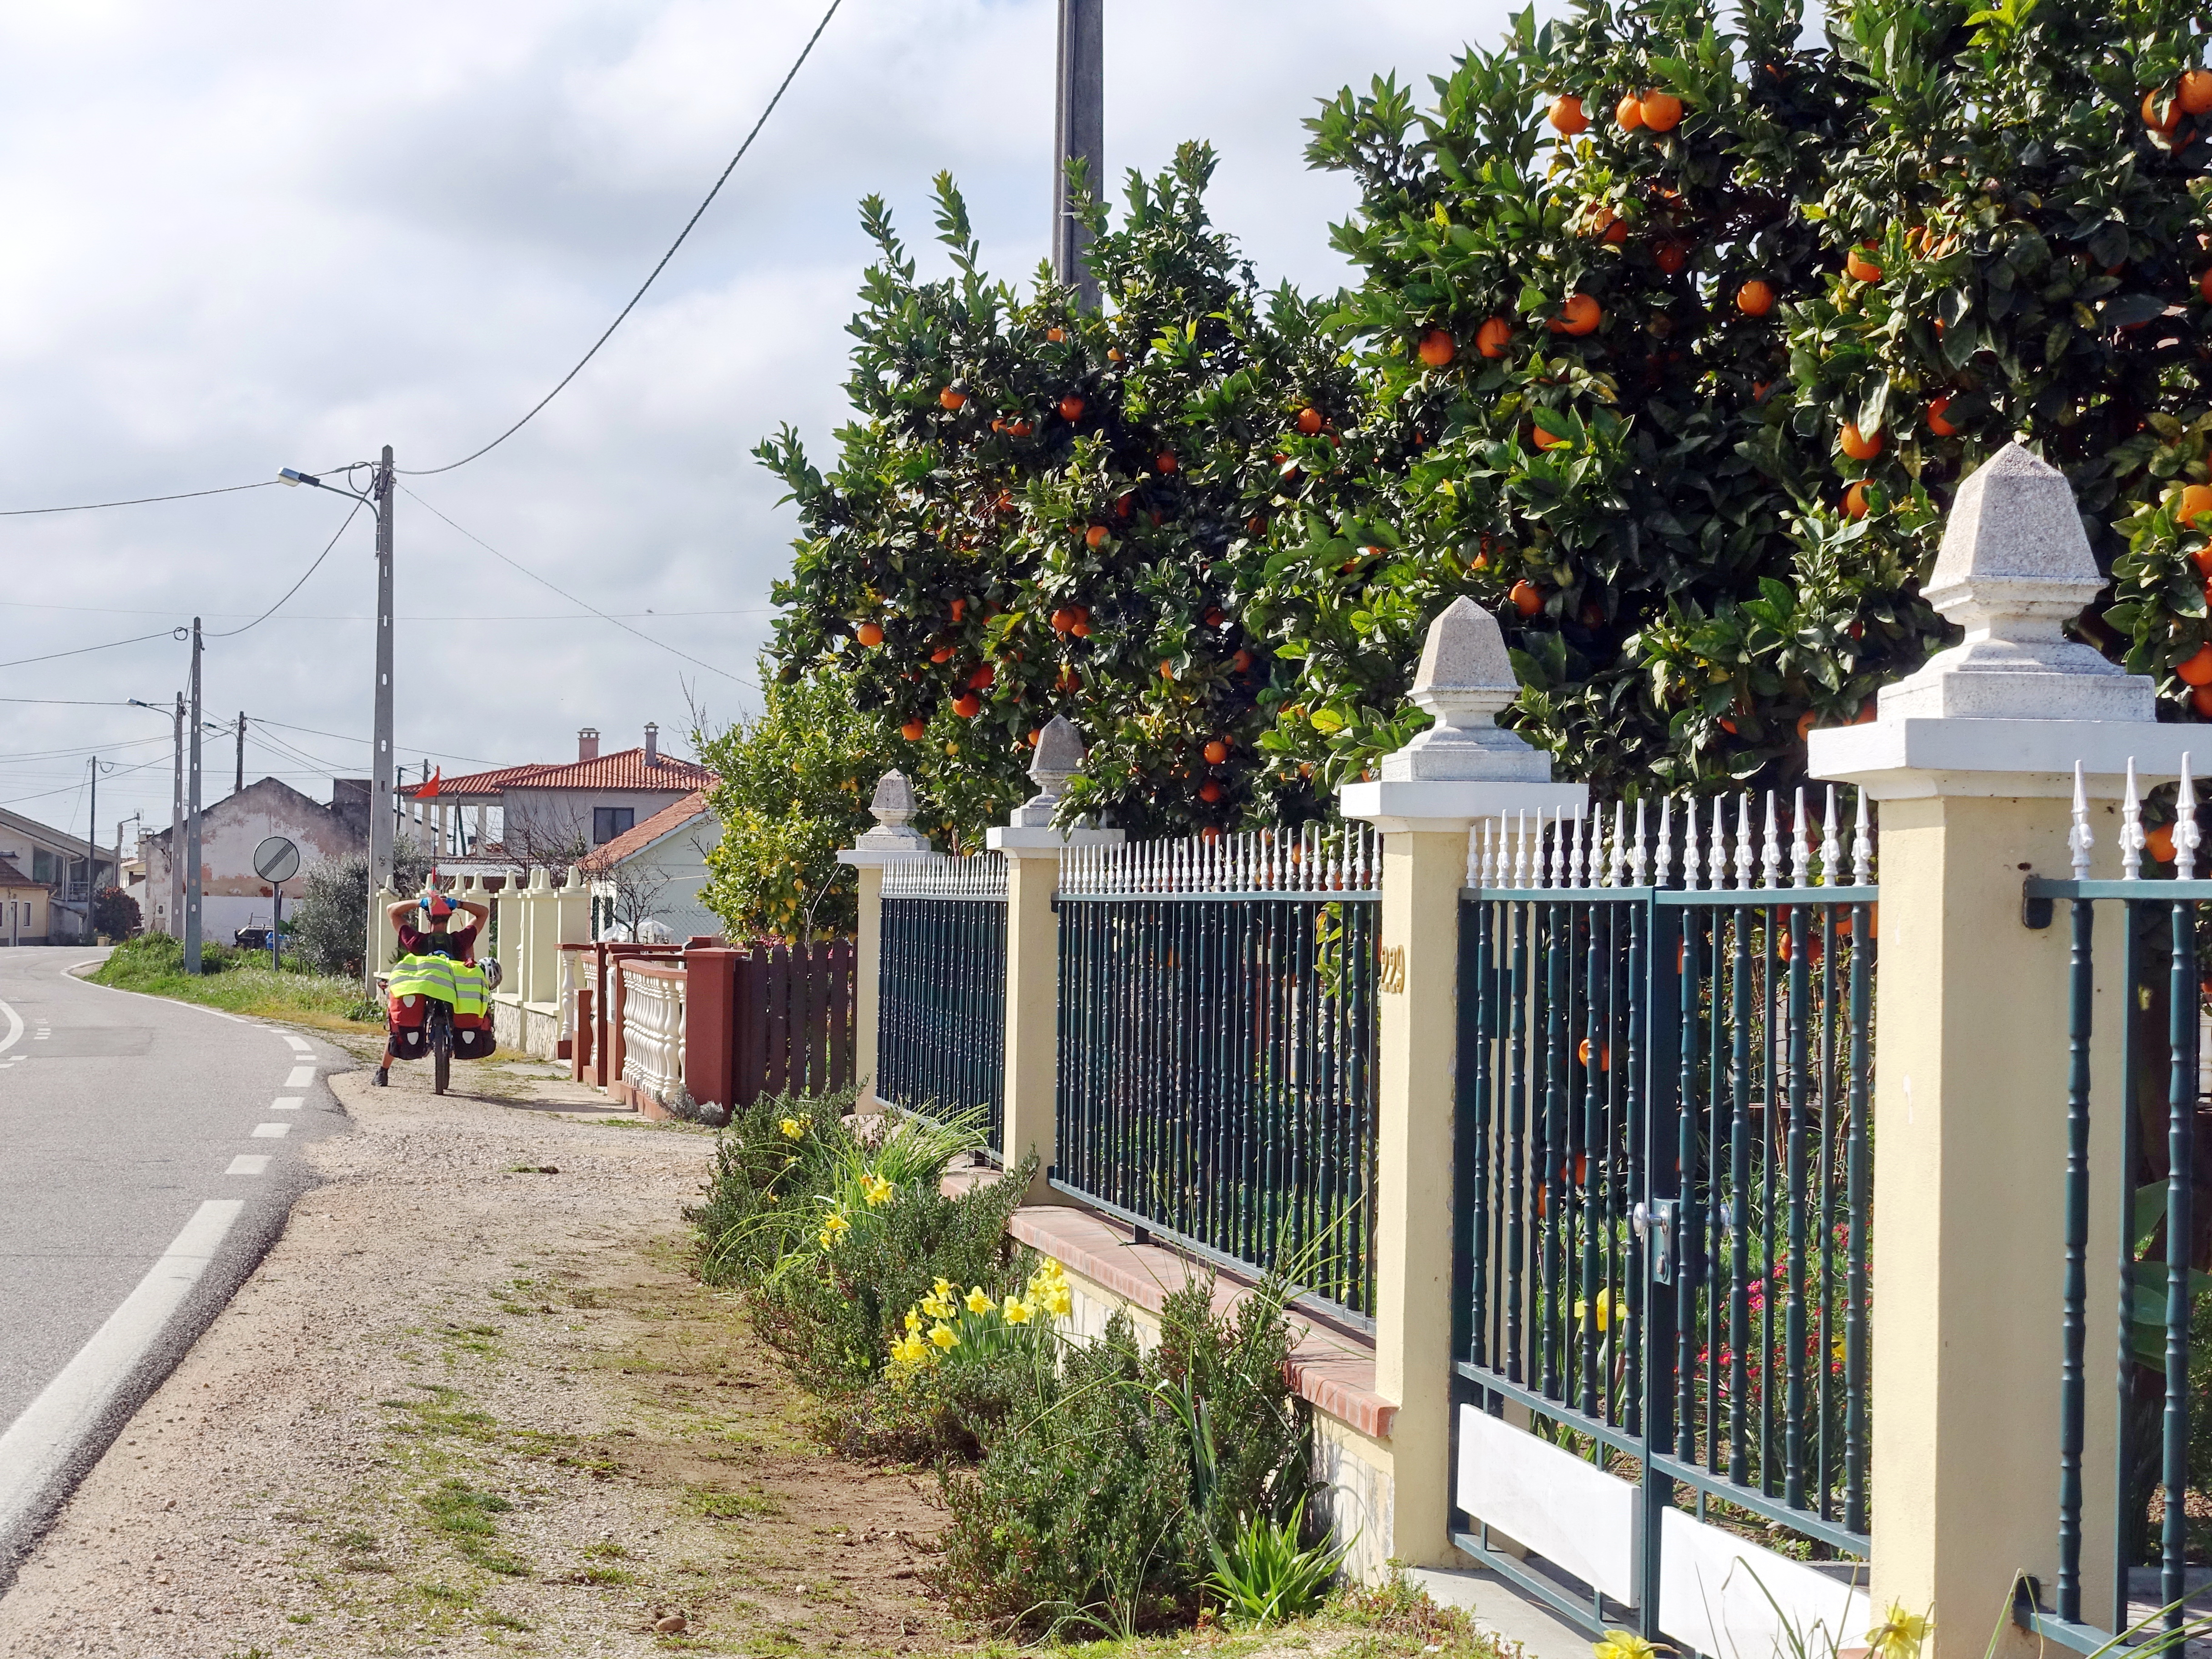 Cycling in Portugal in February, during the orange season and in mild temperatures.